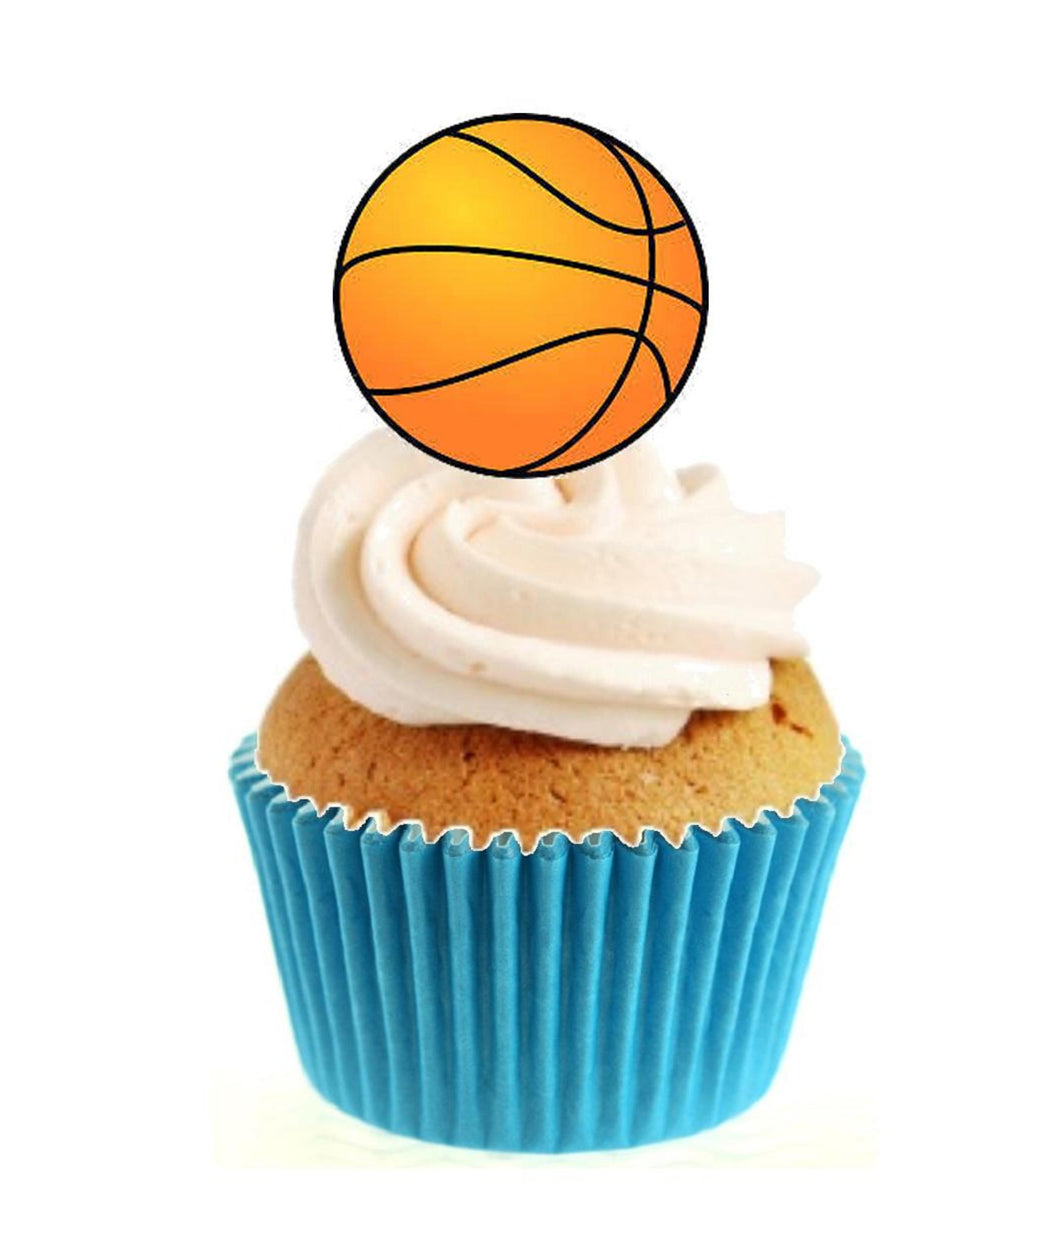 Basketball Stand Up Cake Toppers (12 pack)  Pack contains 12 images printed onto premium wafer card